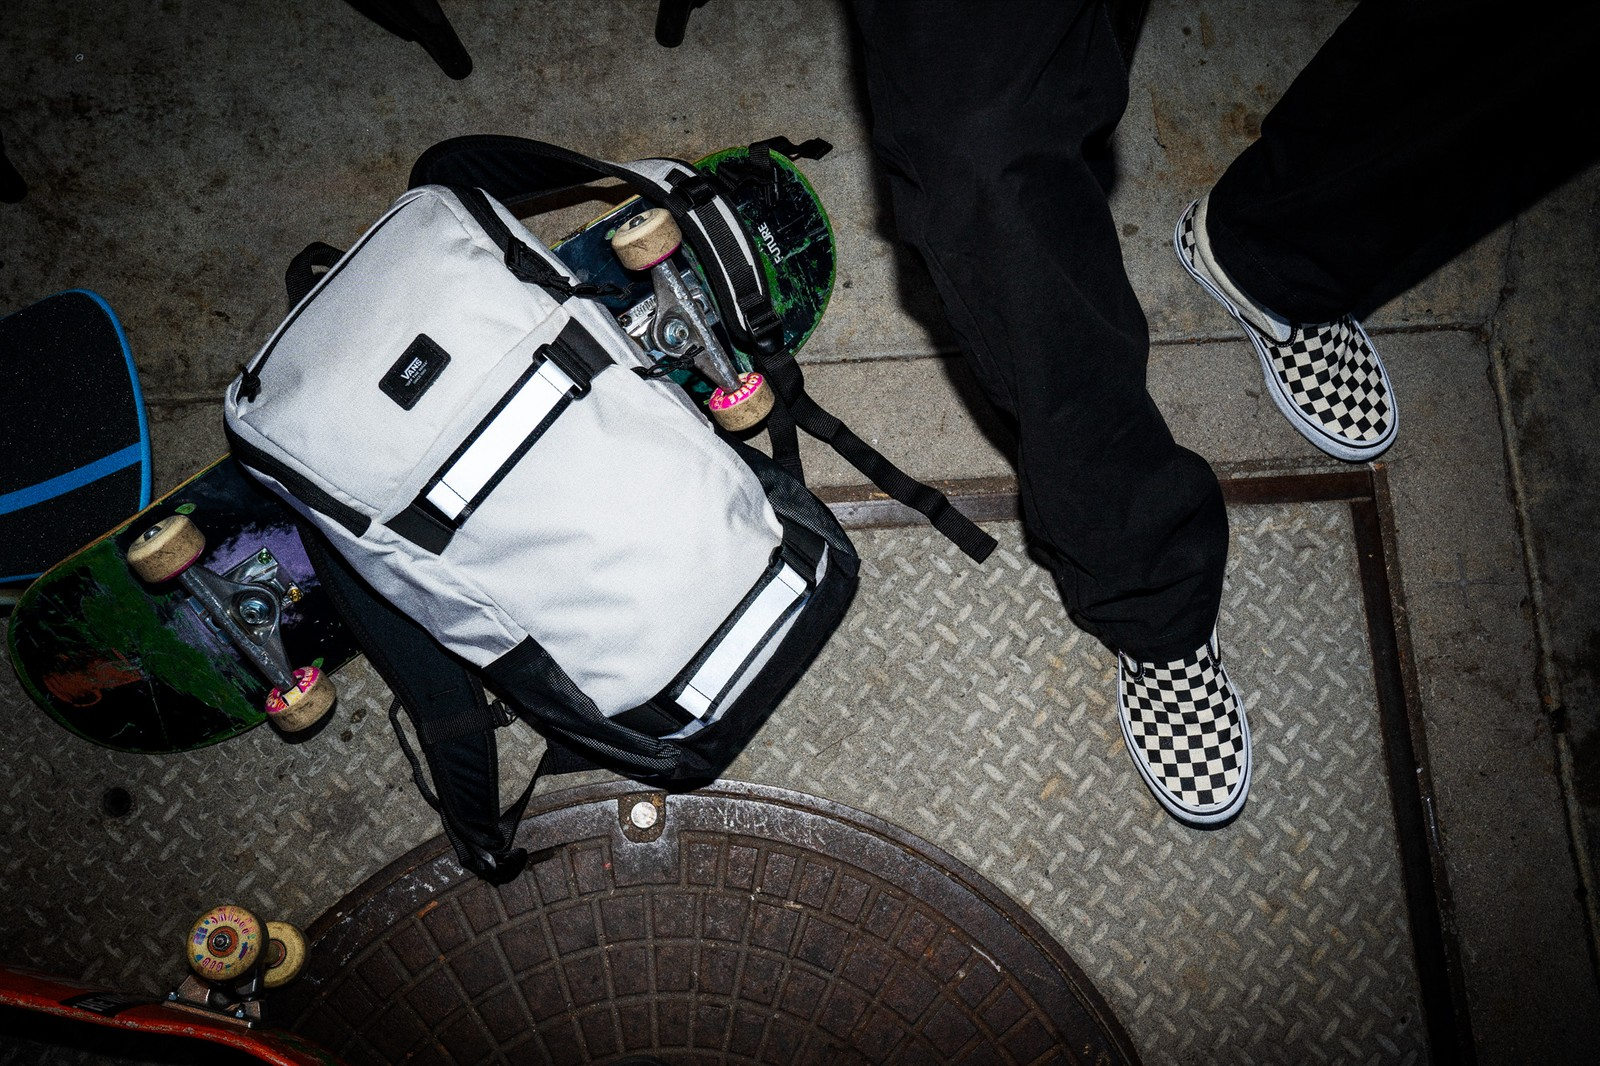 The Vans Reflective Pack is now available worldwide at authorized Vans retailers and Vans.com/skate.